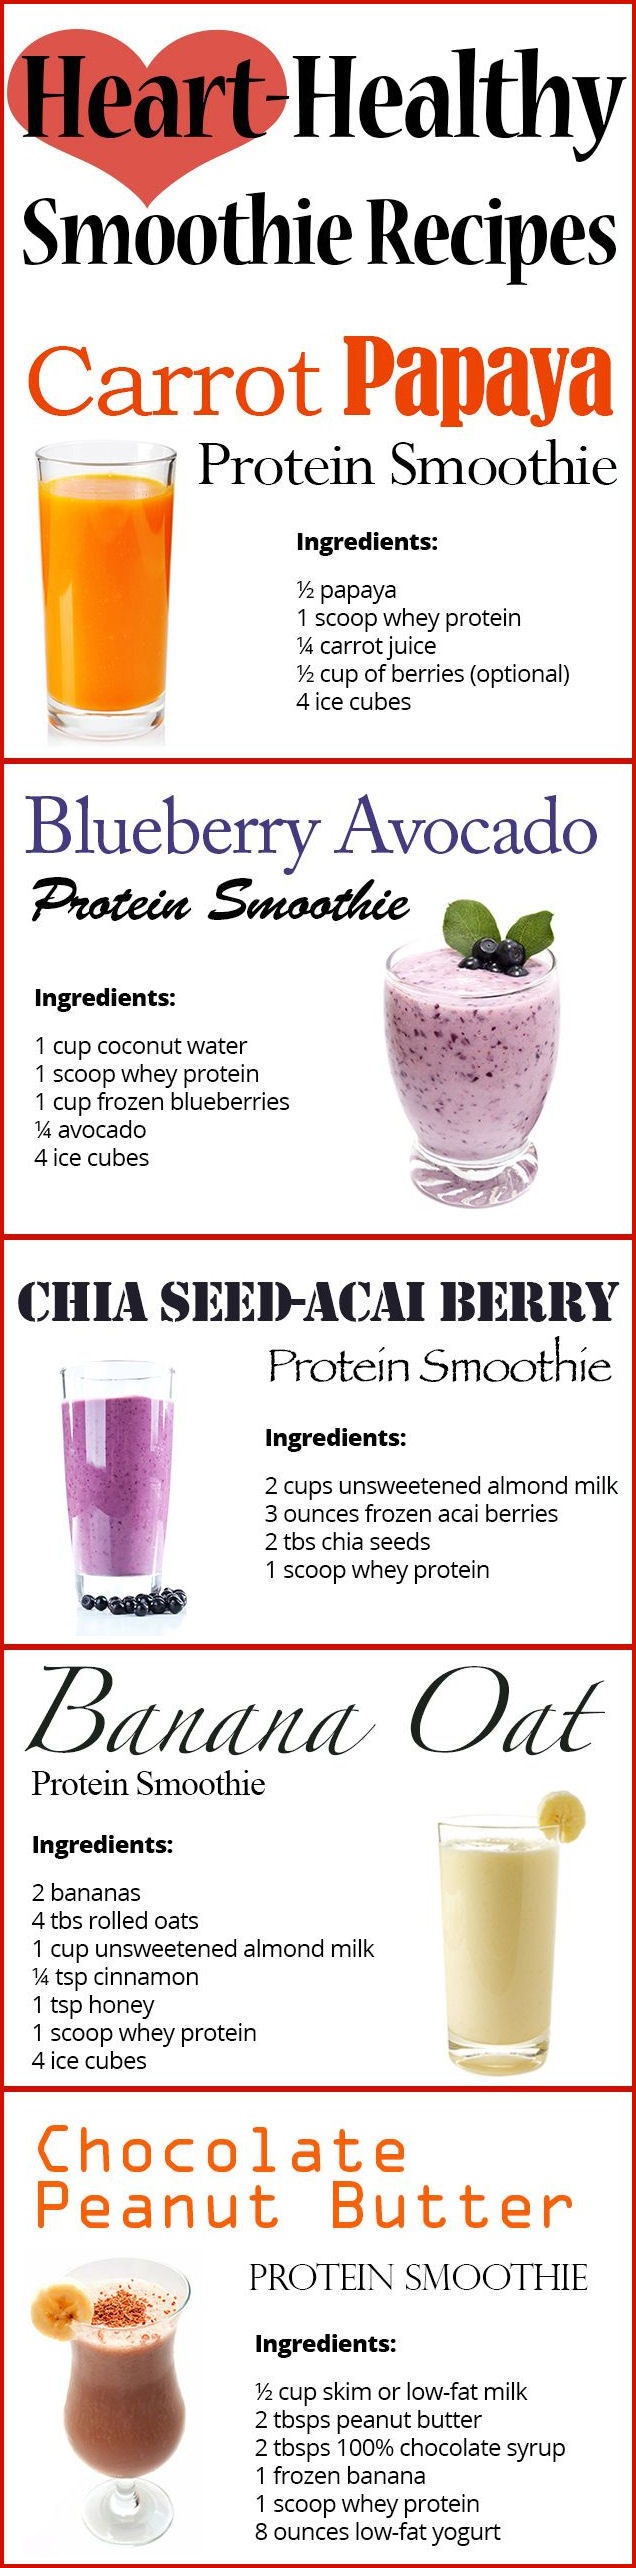 Heart Healthy Smoothie Recipes Heart Healthy Smoothie Recipes s and